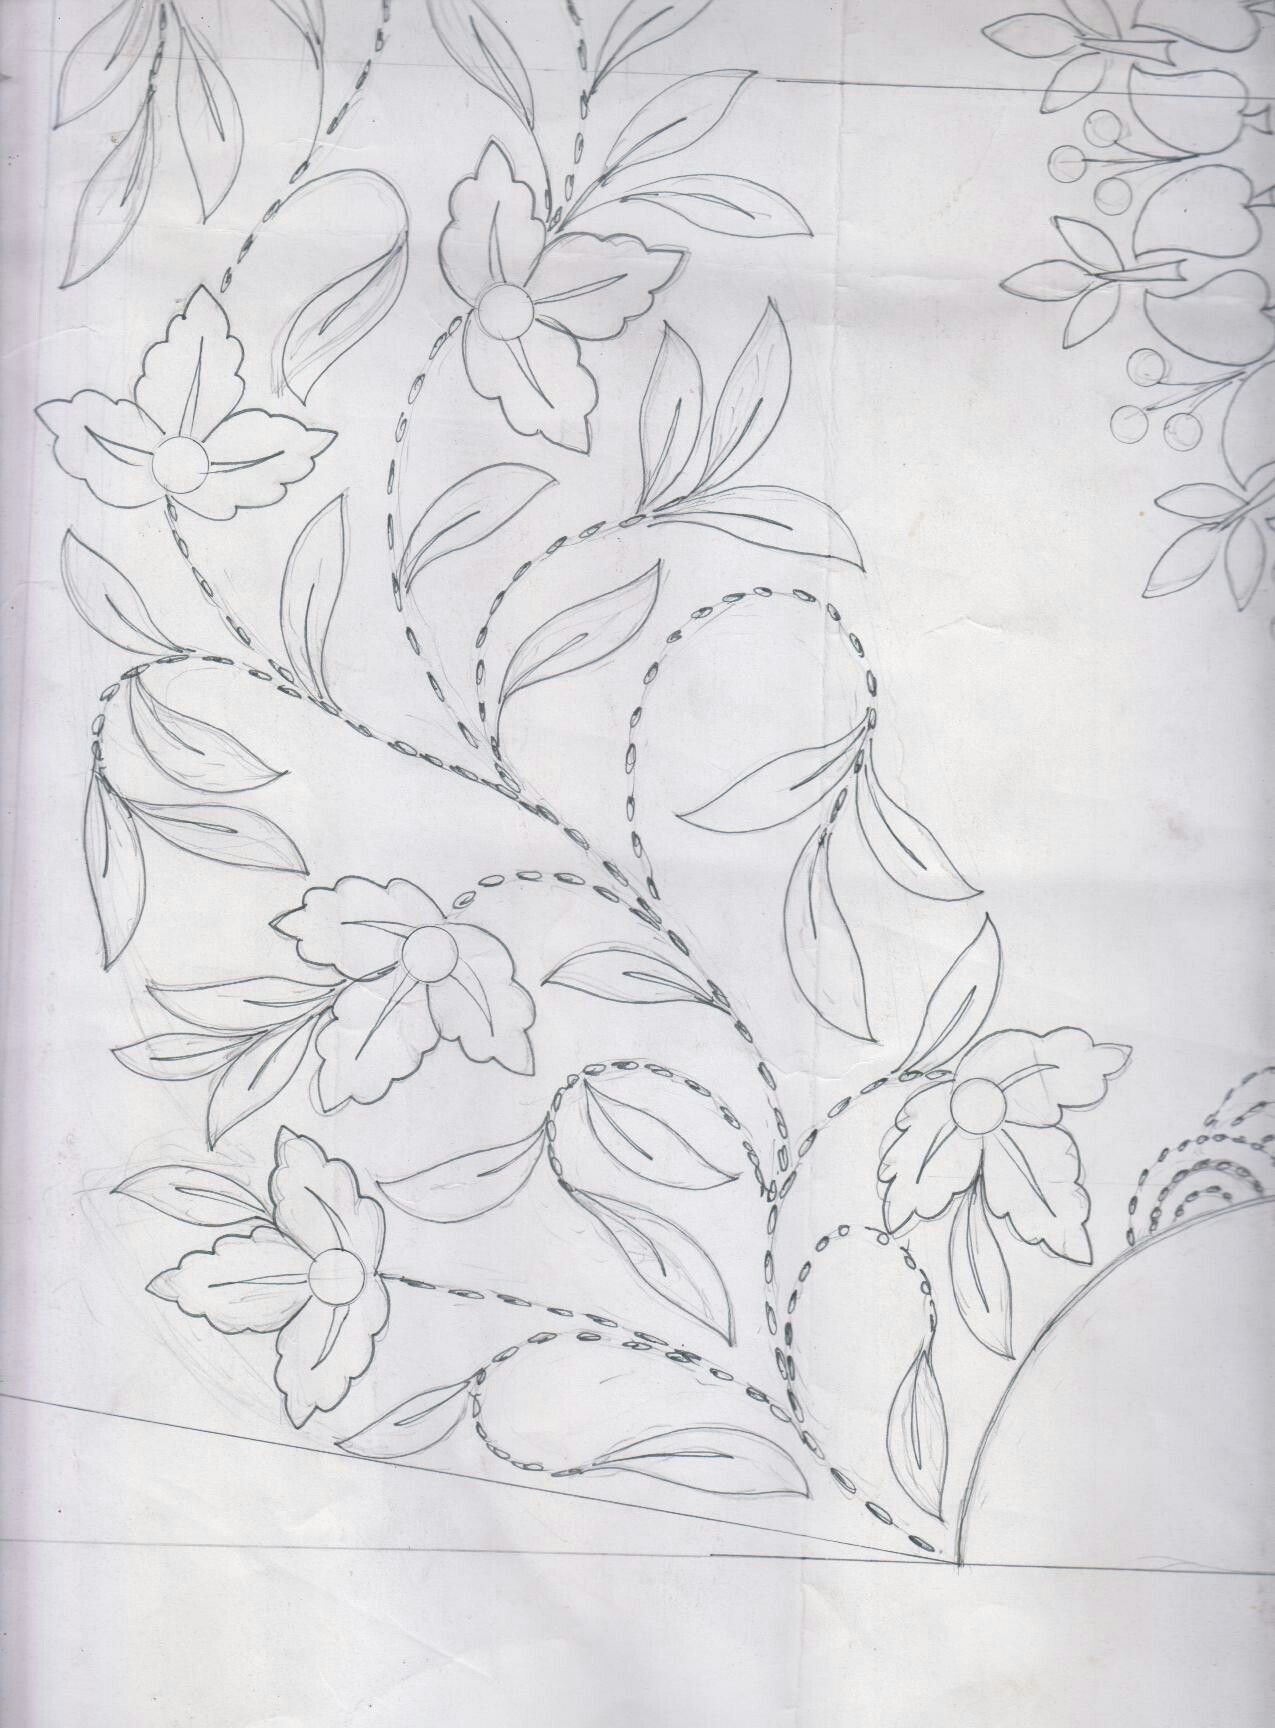 Pin by prithivya on embroidery patterns pinterest beaded beaded embroidery embroidery patterns floral designs drawings art drawings embroidery embroidery designs punch needle patterns beading bankloansurffo Gallery